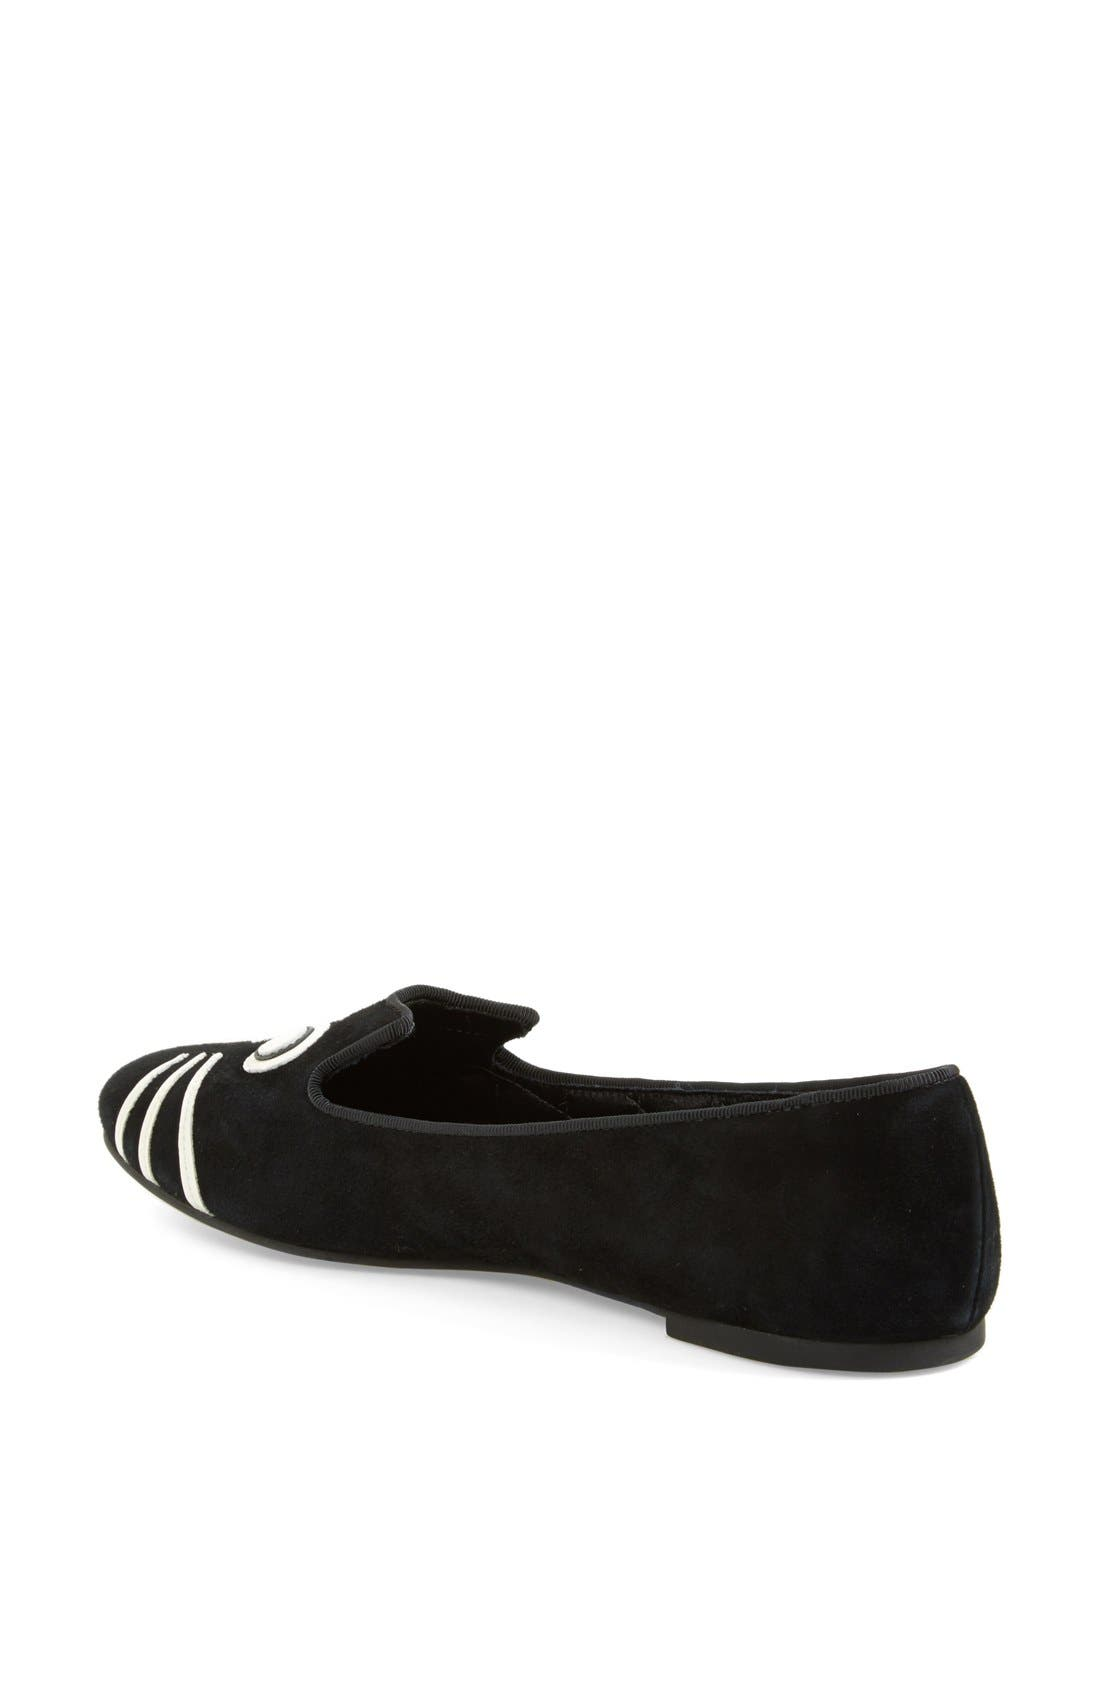 Alternate Image 2  - MARC BY MARC JACOBS 'Rue' Suede Smoking Flat